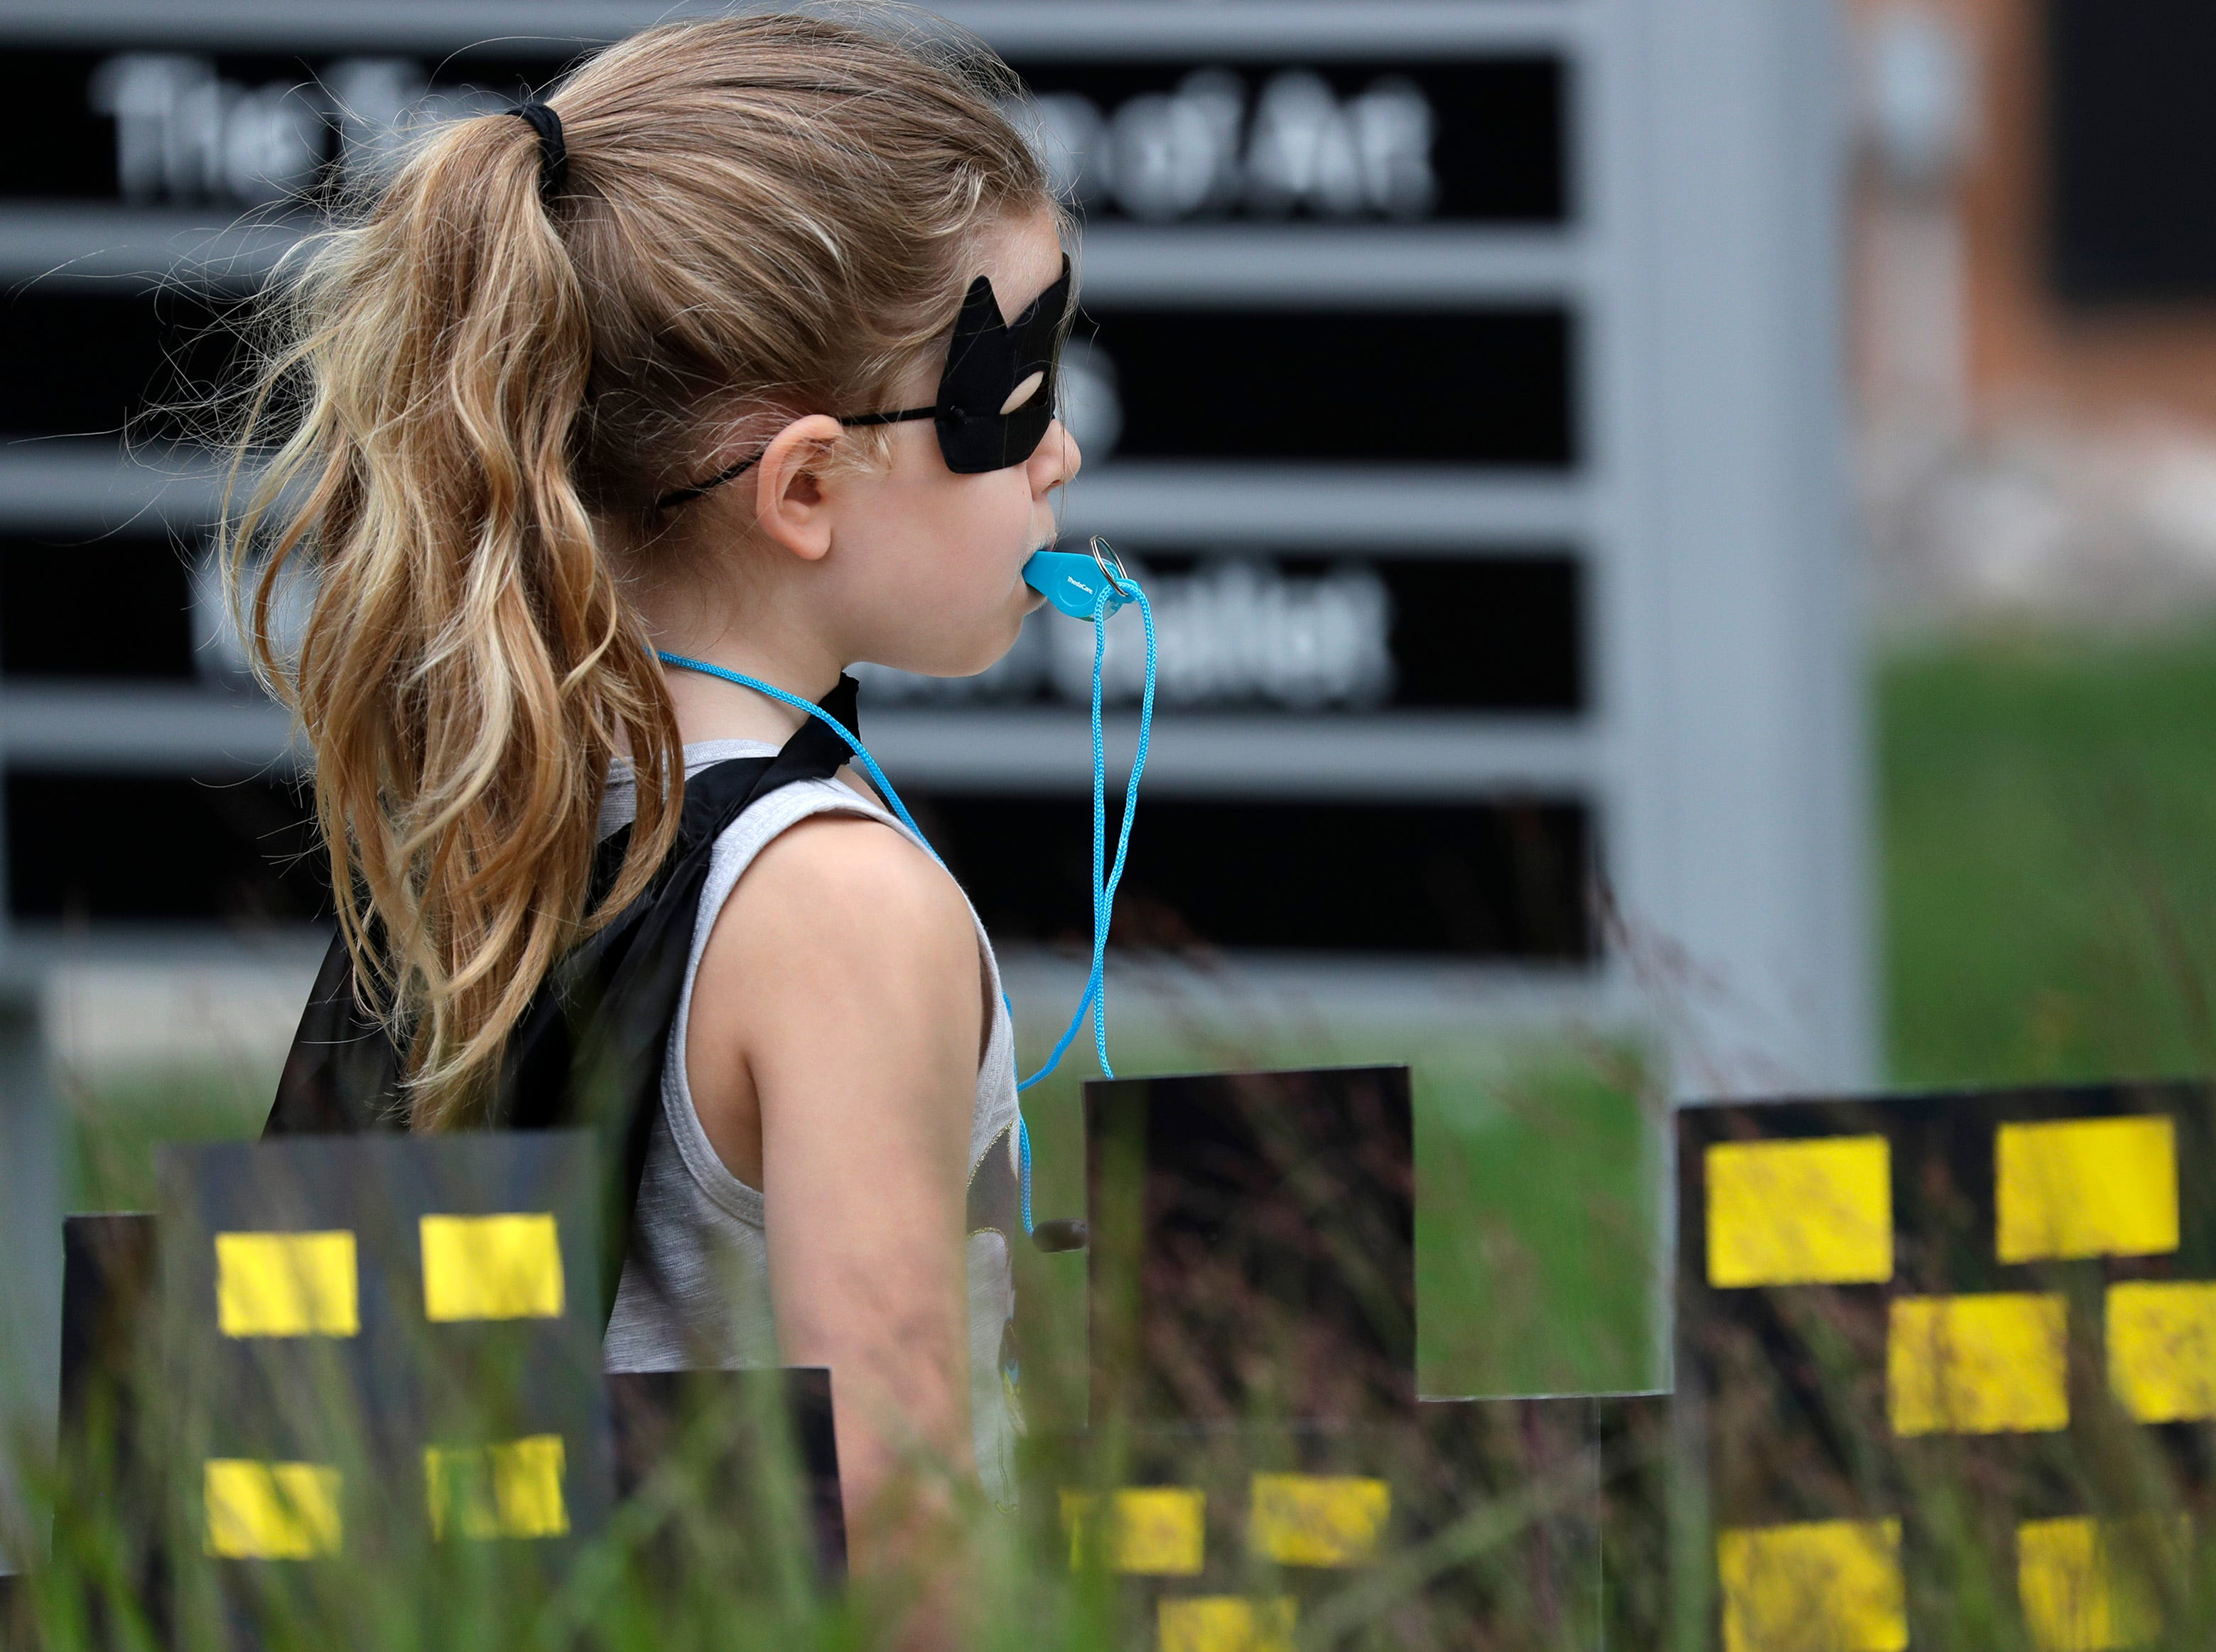 Harper Wundrow, 5, of Appleton, blows a whistle while waiting for the 10th annual ChildrenÕs Parade to start Wednesday, July 25, 2018, in Appleton, Wis. Danny Damiani/USA TODAY NETWORK-Wisconsin